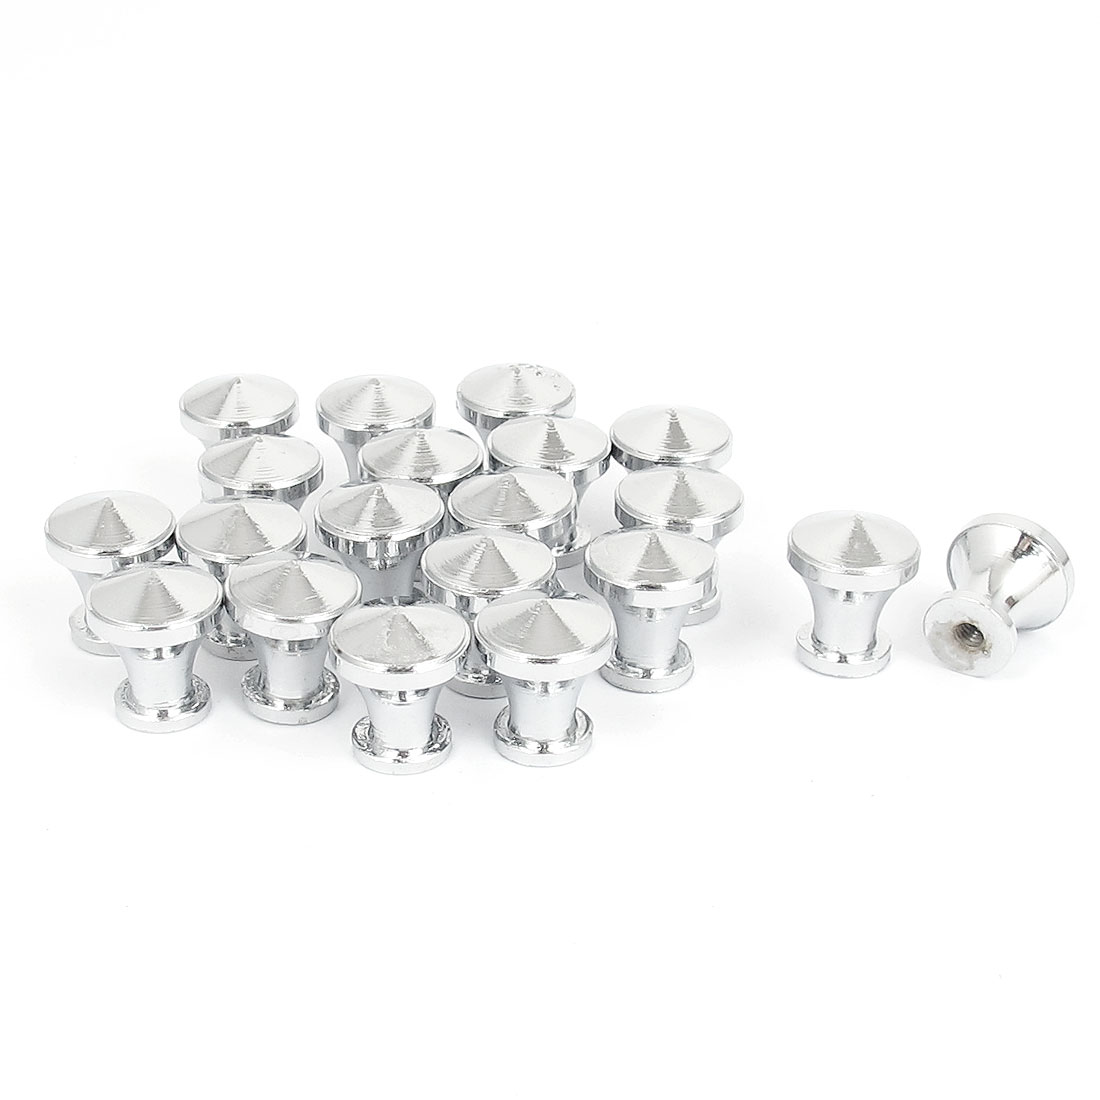 15mm Dia Knob Furniture Kitchen Cabinet Drawer Door Chrome Plated Pull Handle 20pcs